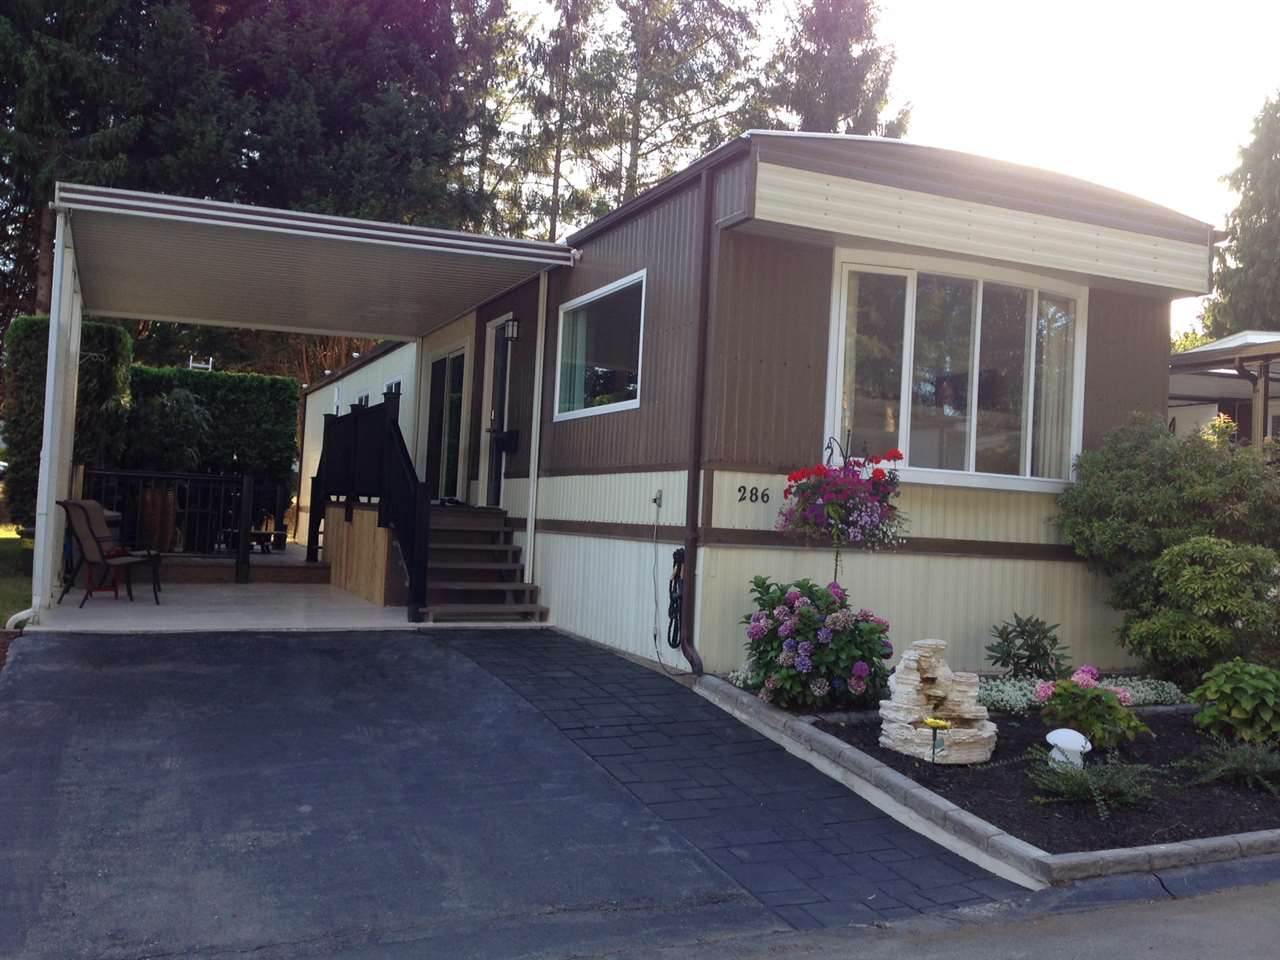 "Main Photo: 286 1840 160 Street in Surrey: King George Corridor Manufactured Home for sale in ""Breakaway Bays"" (South Surrey White Rock)  : MLS® # R2197589"